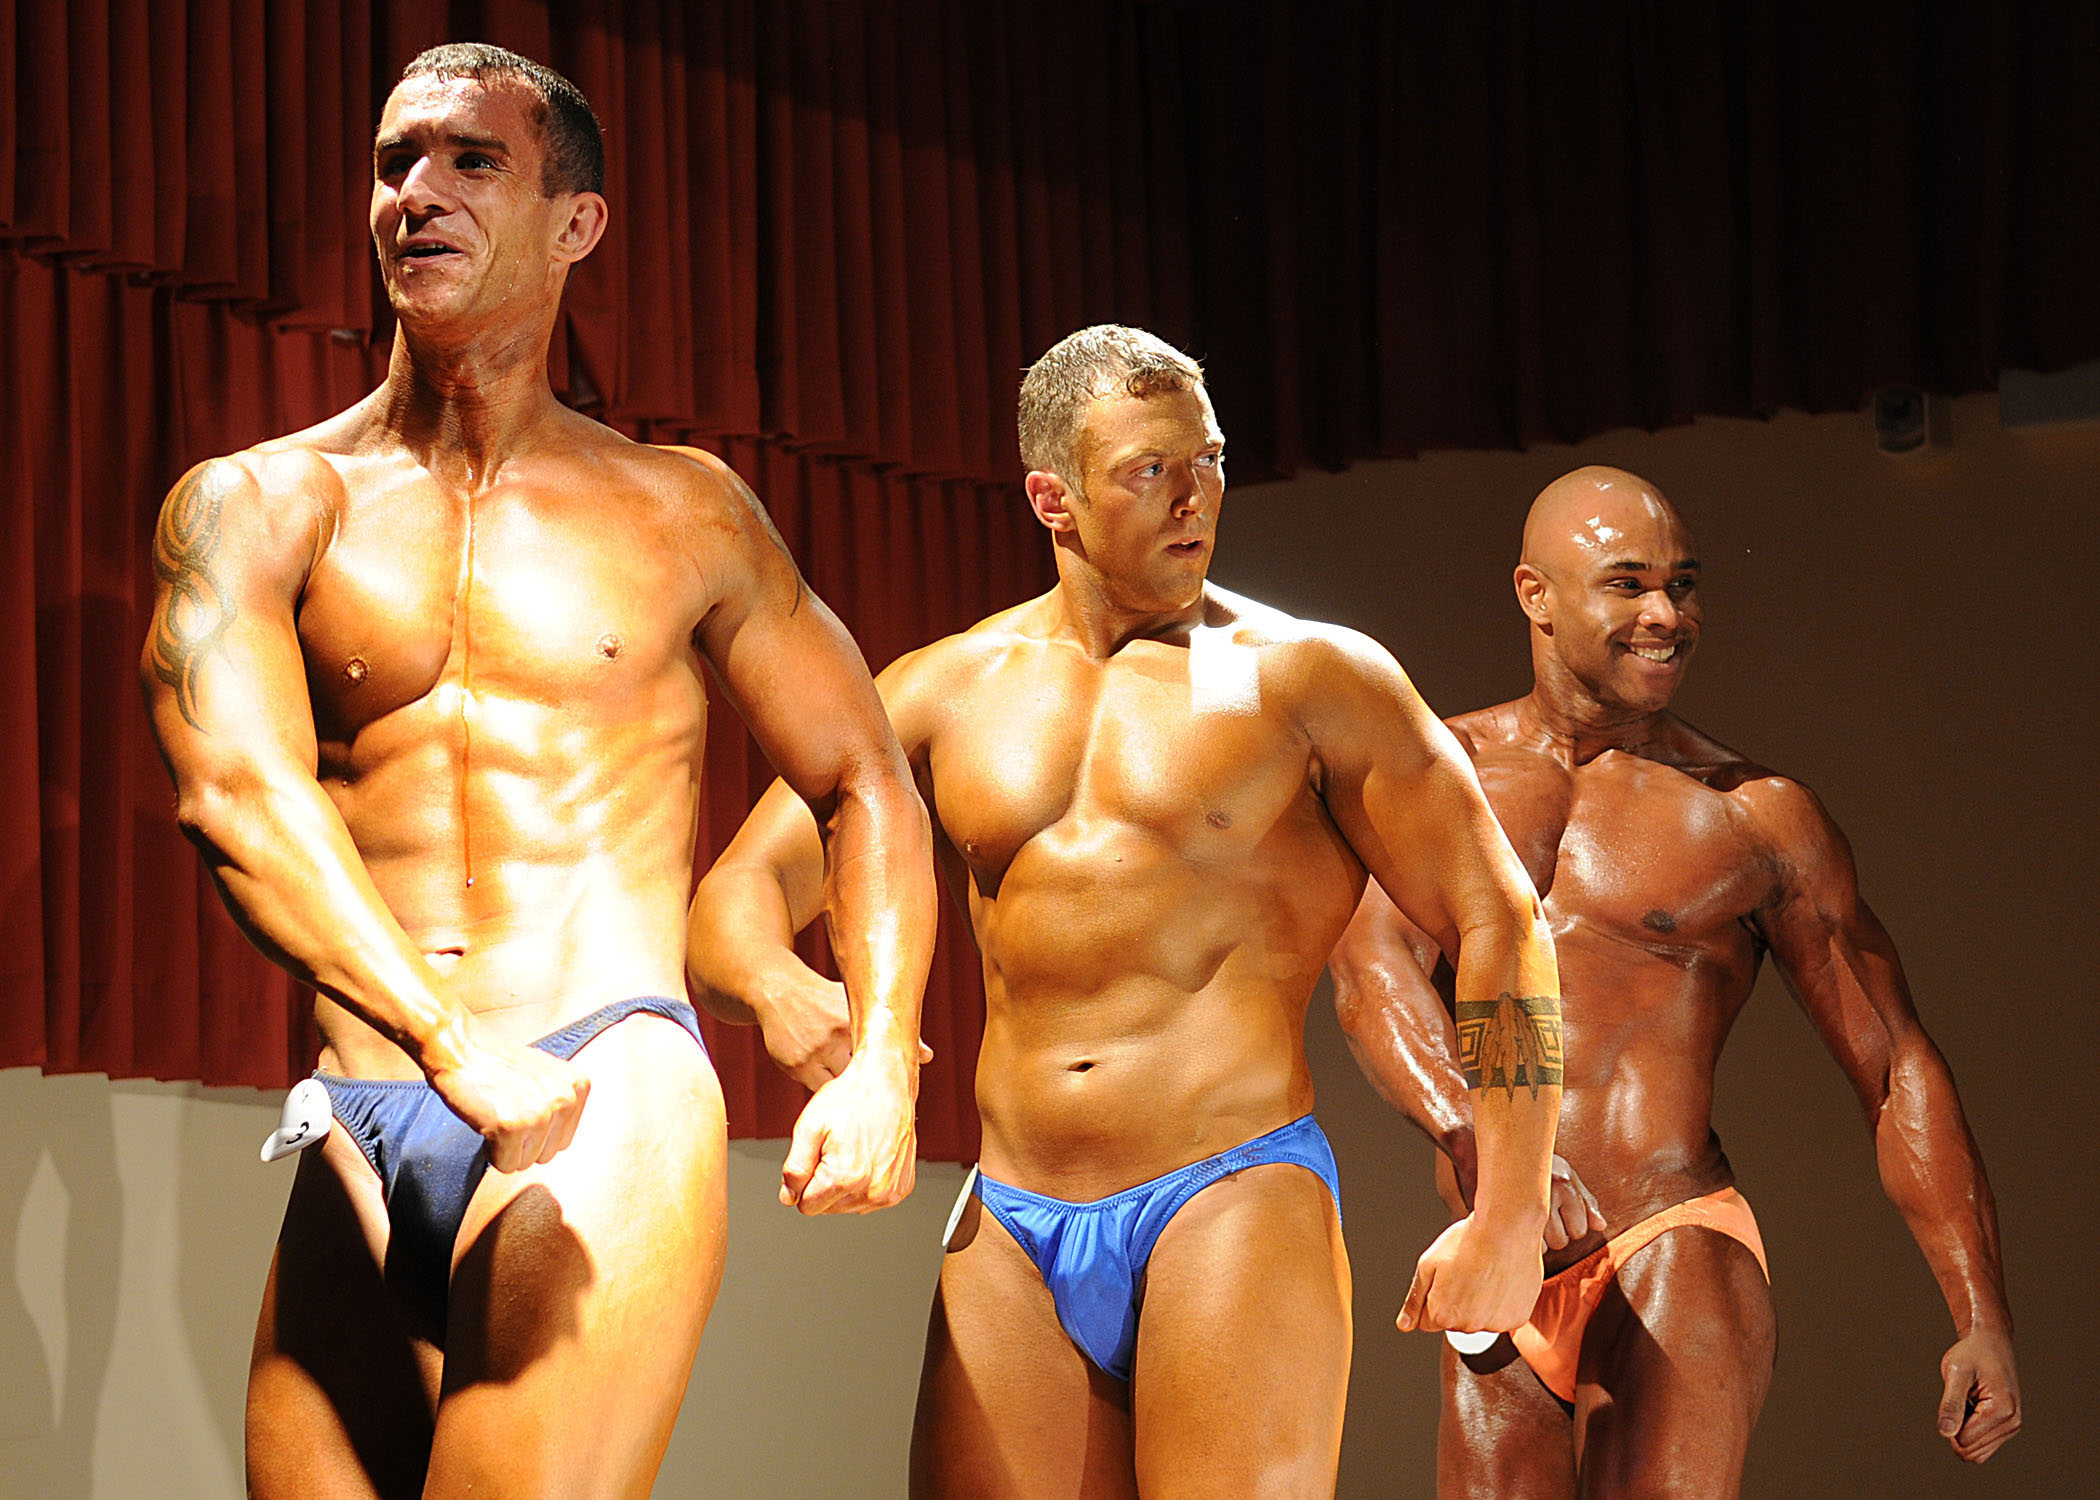 Want A Thriving Business? Focus On bodybuilding videos!